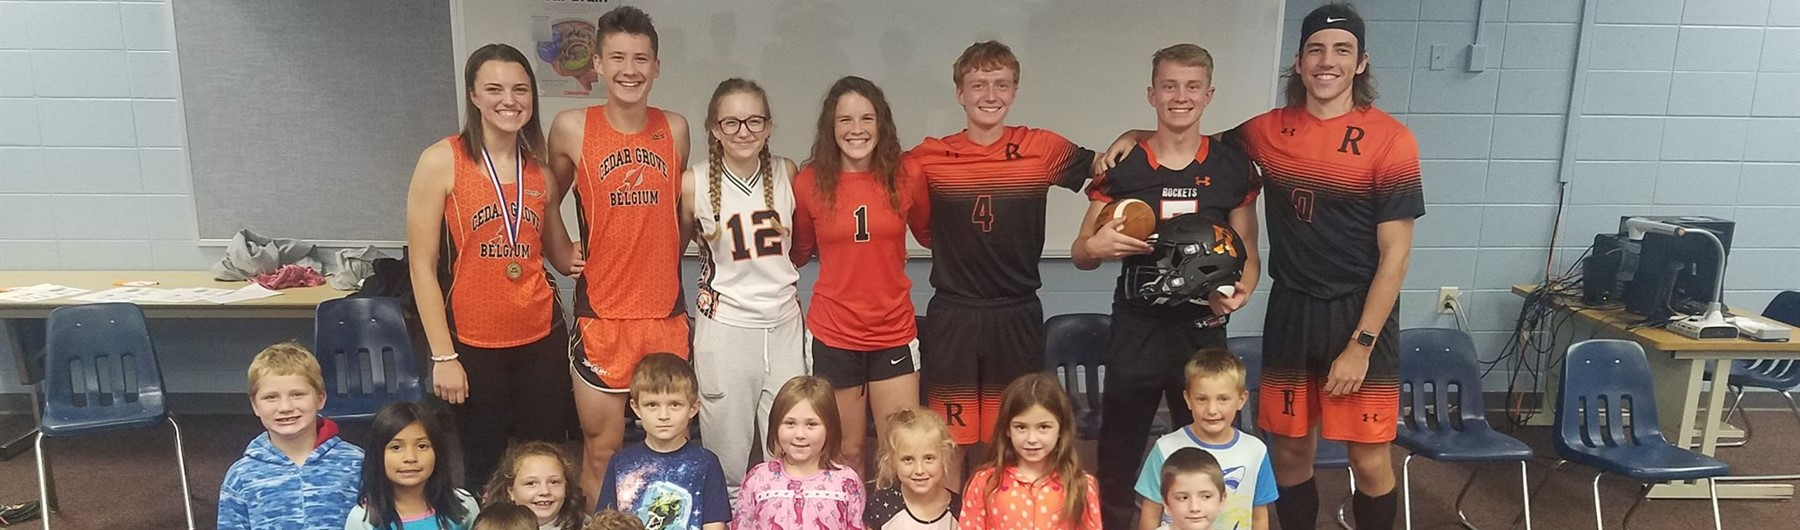 2019 Fall Athletes visit 1st gr